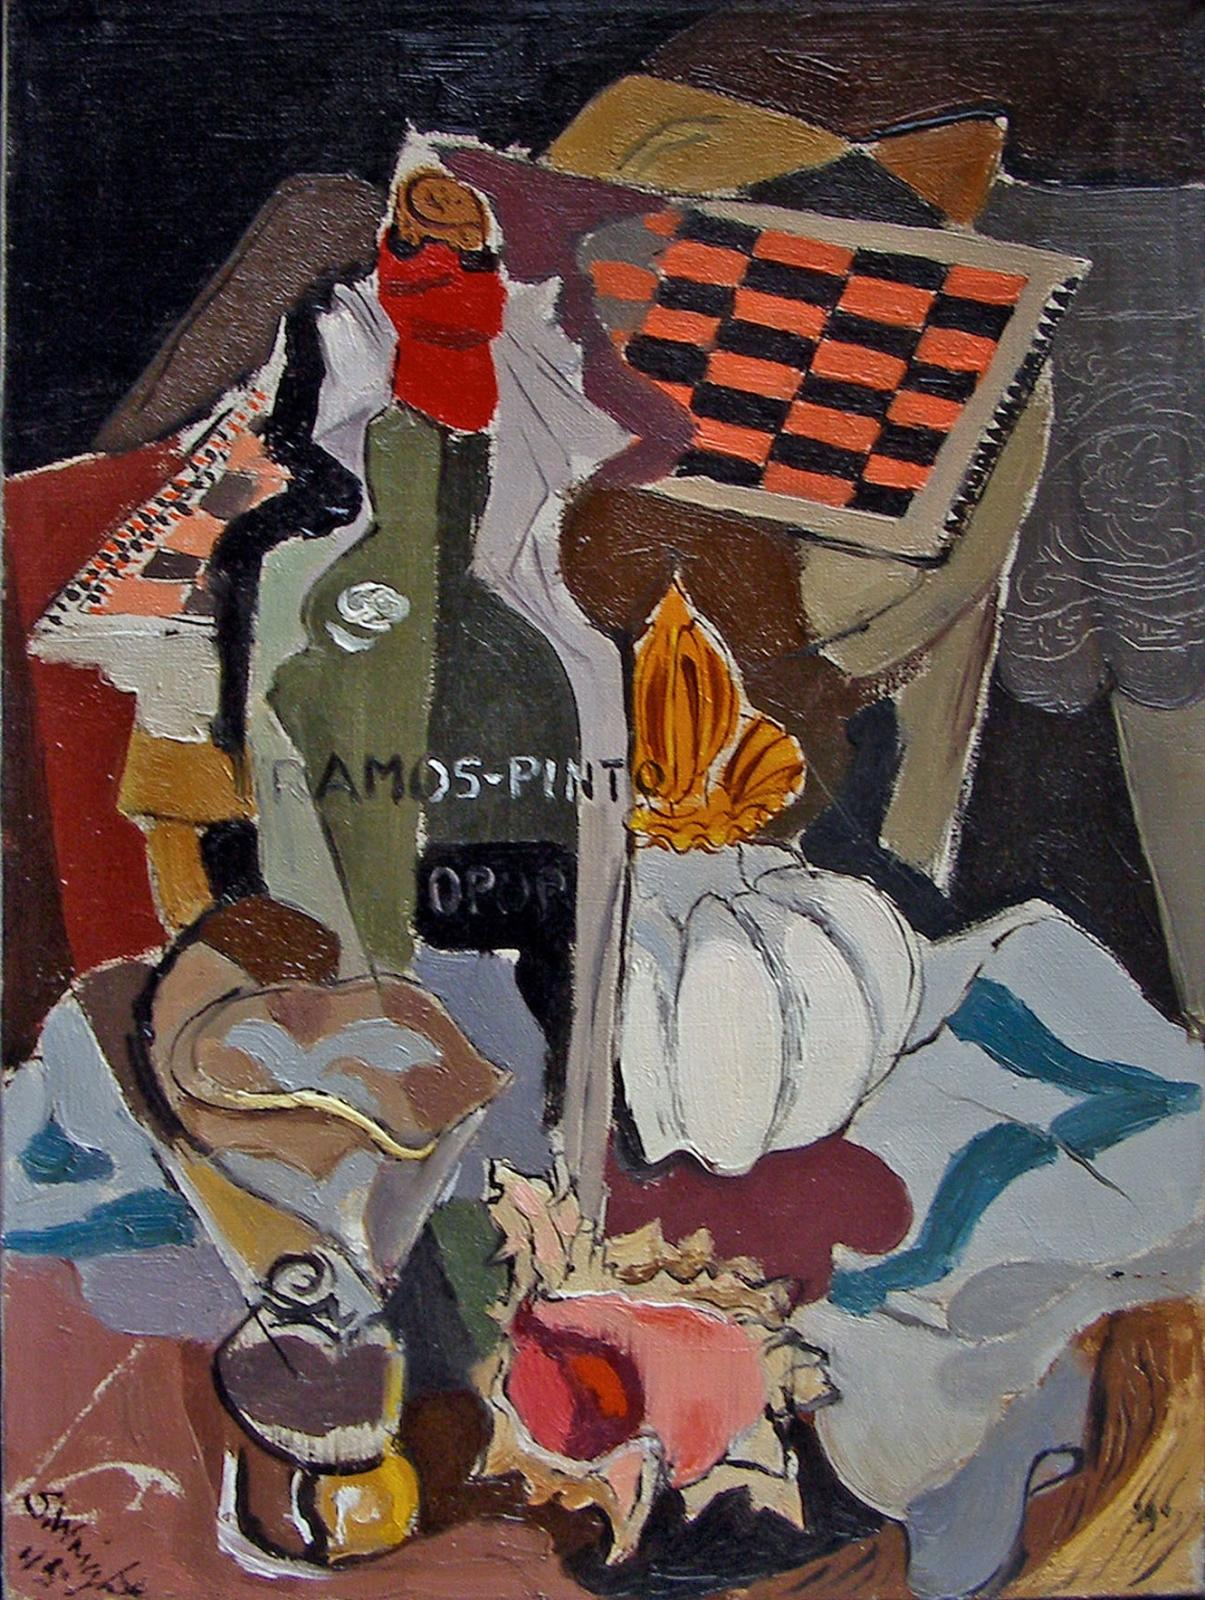 Untitled (Still Life with Game Board and Wine)